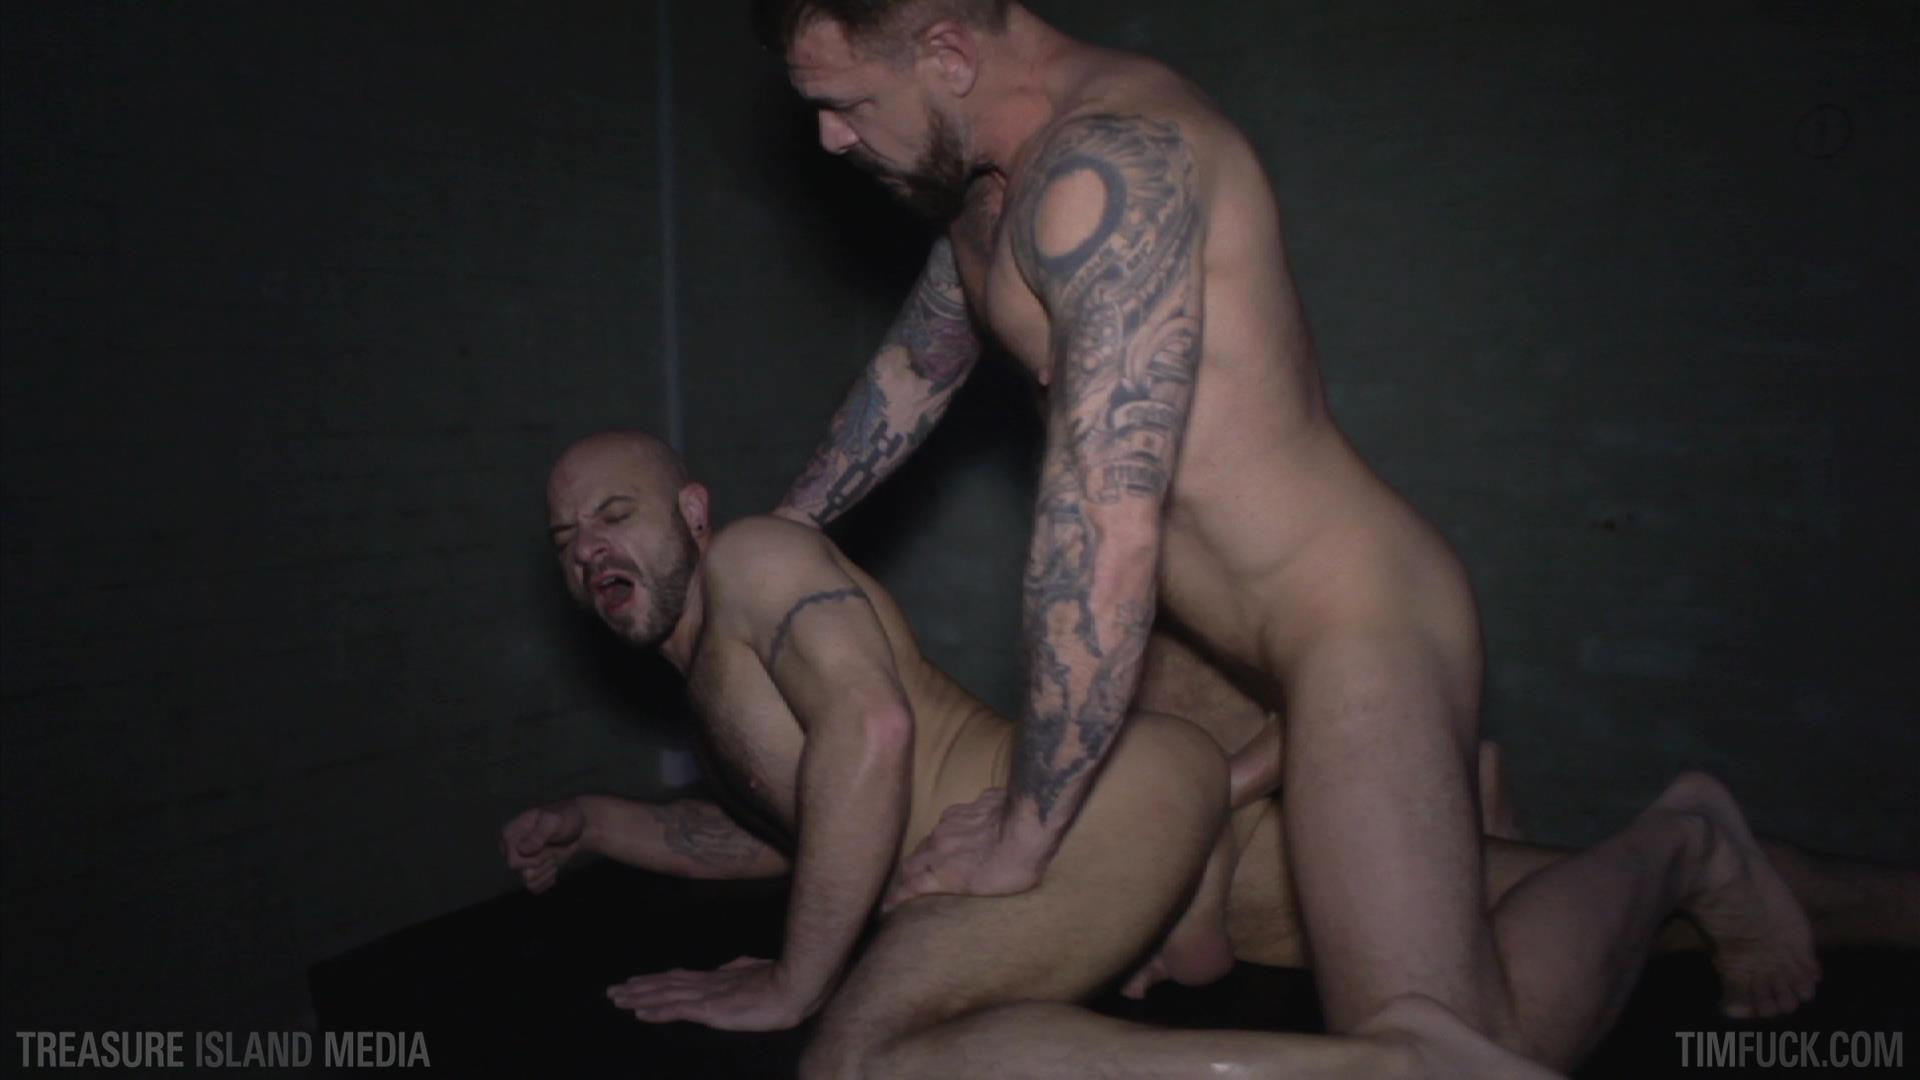 Treasure Island Media TimFuck Rocco Steele and Ben Statham Bareback Amateur Gay Porn 32